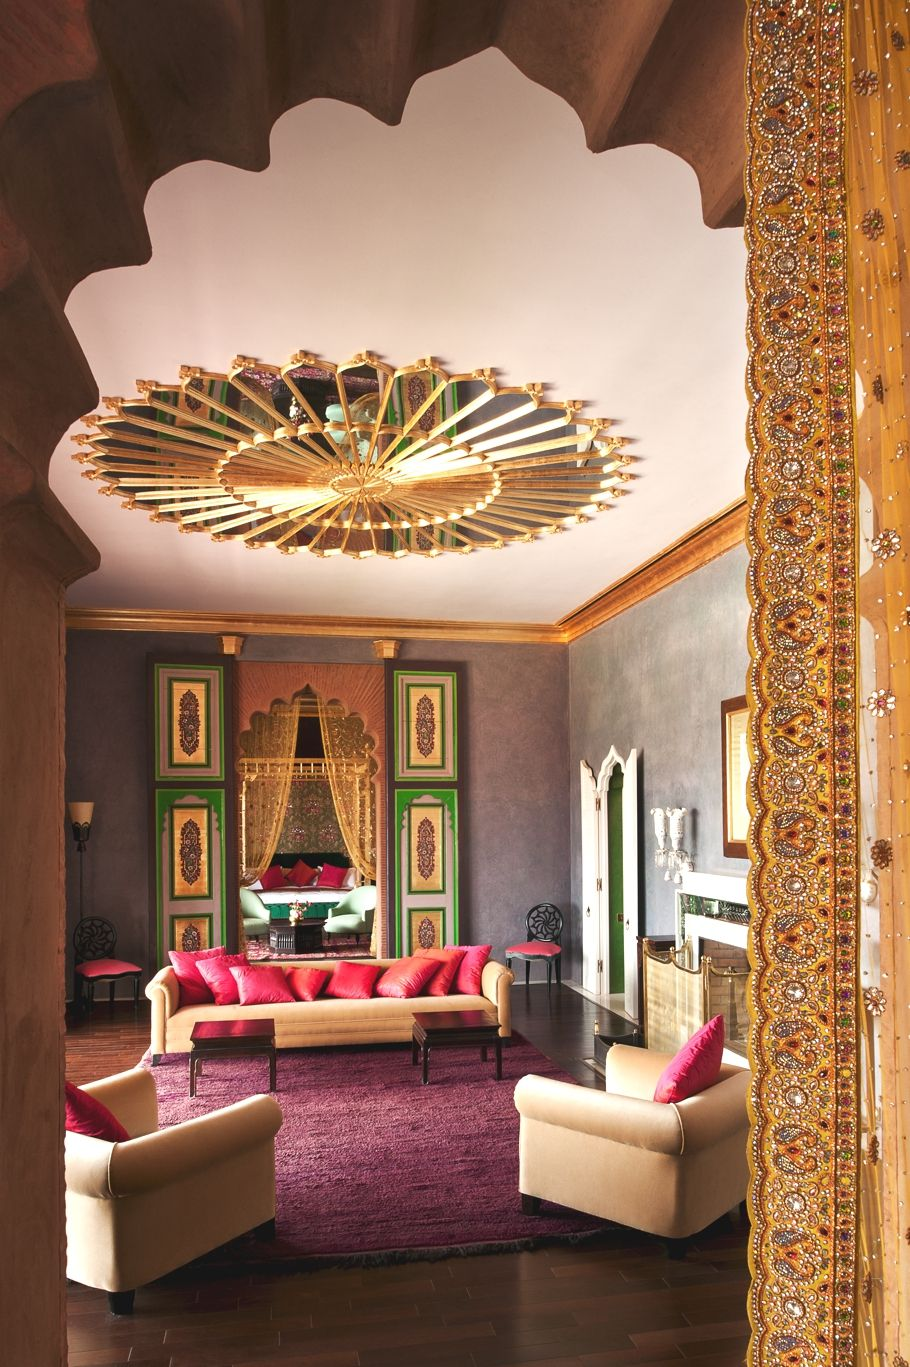 Taj palace luxury hotel in marrakech book inspiration for Hotel home decor